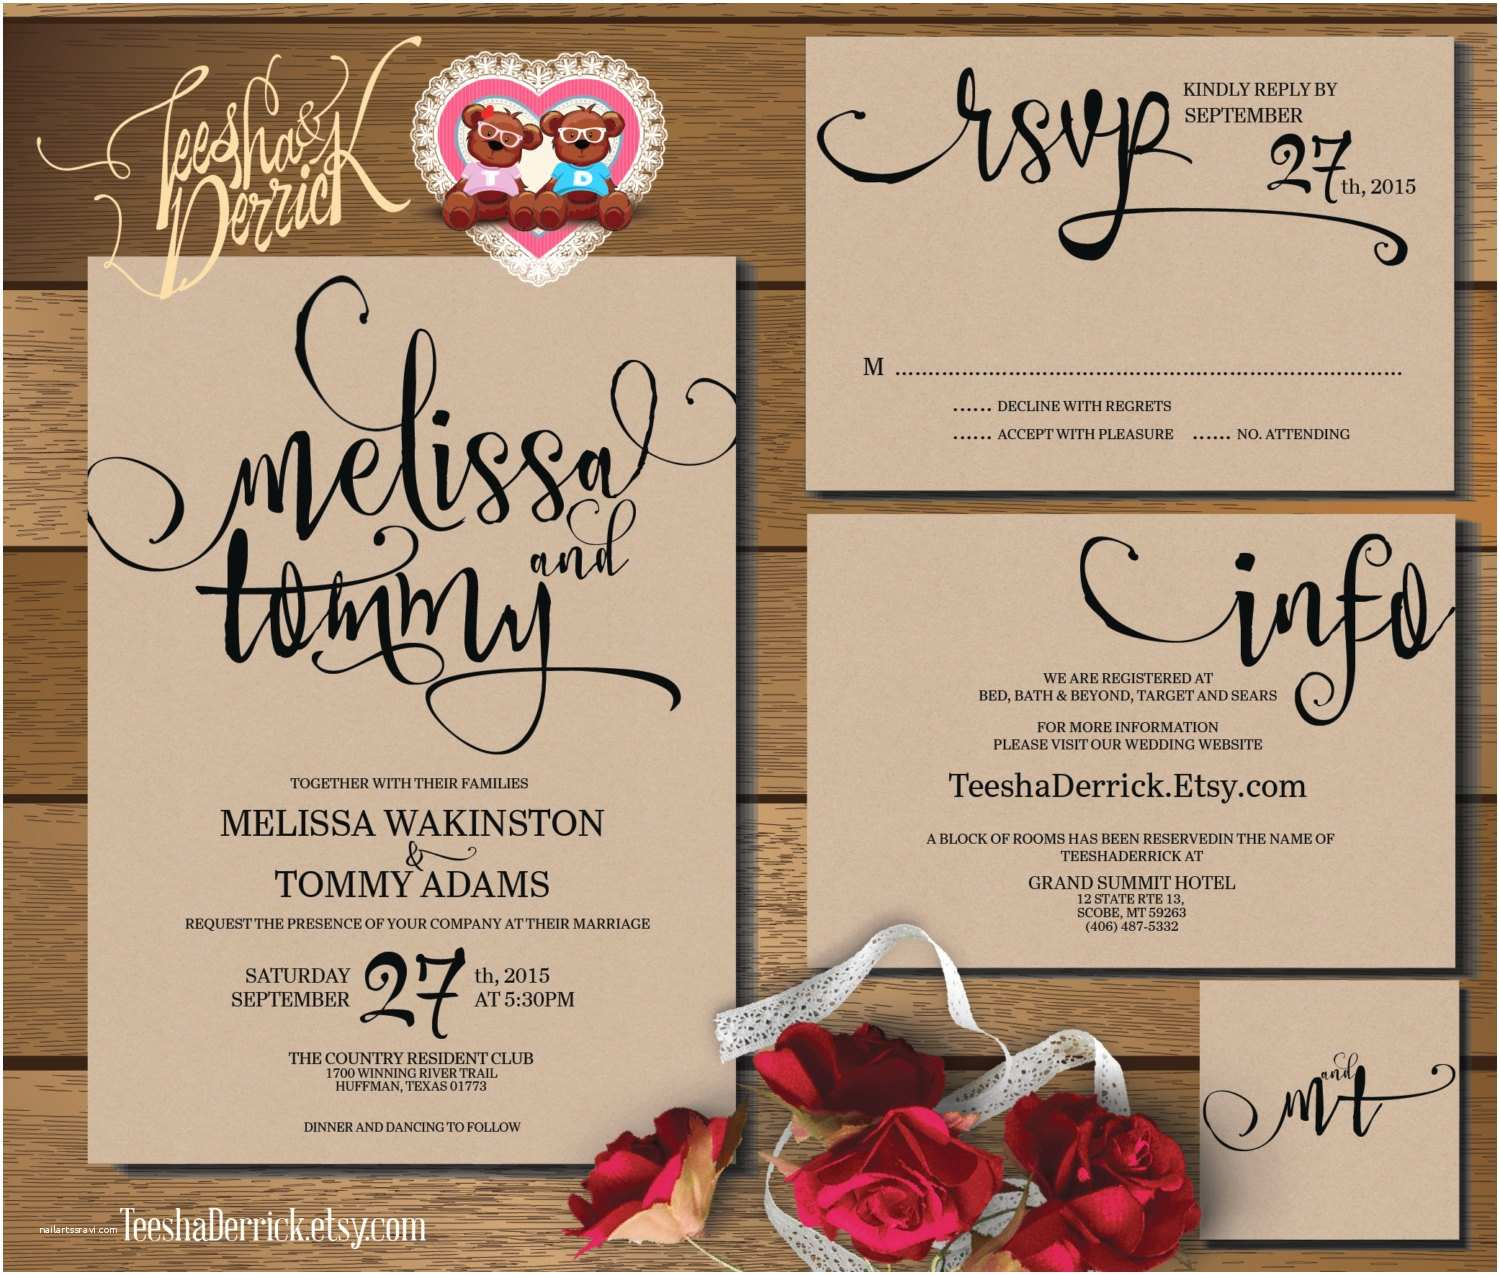 How to Invite for Wedding Printable Wedding Invitation Suite W0346 Consists Of